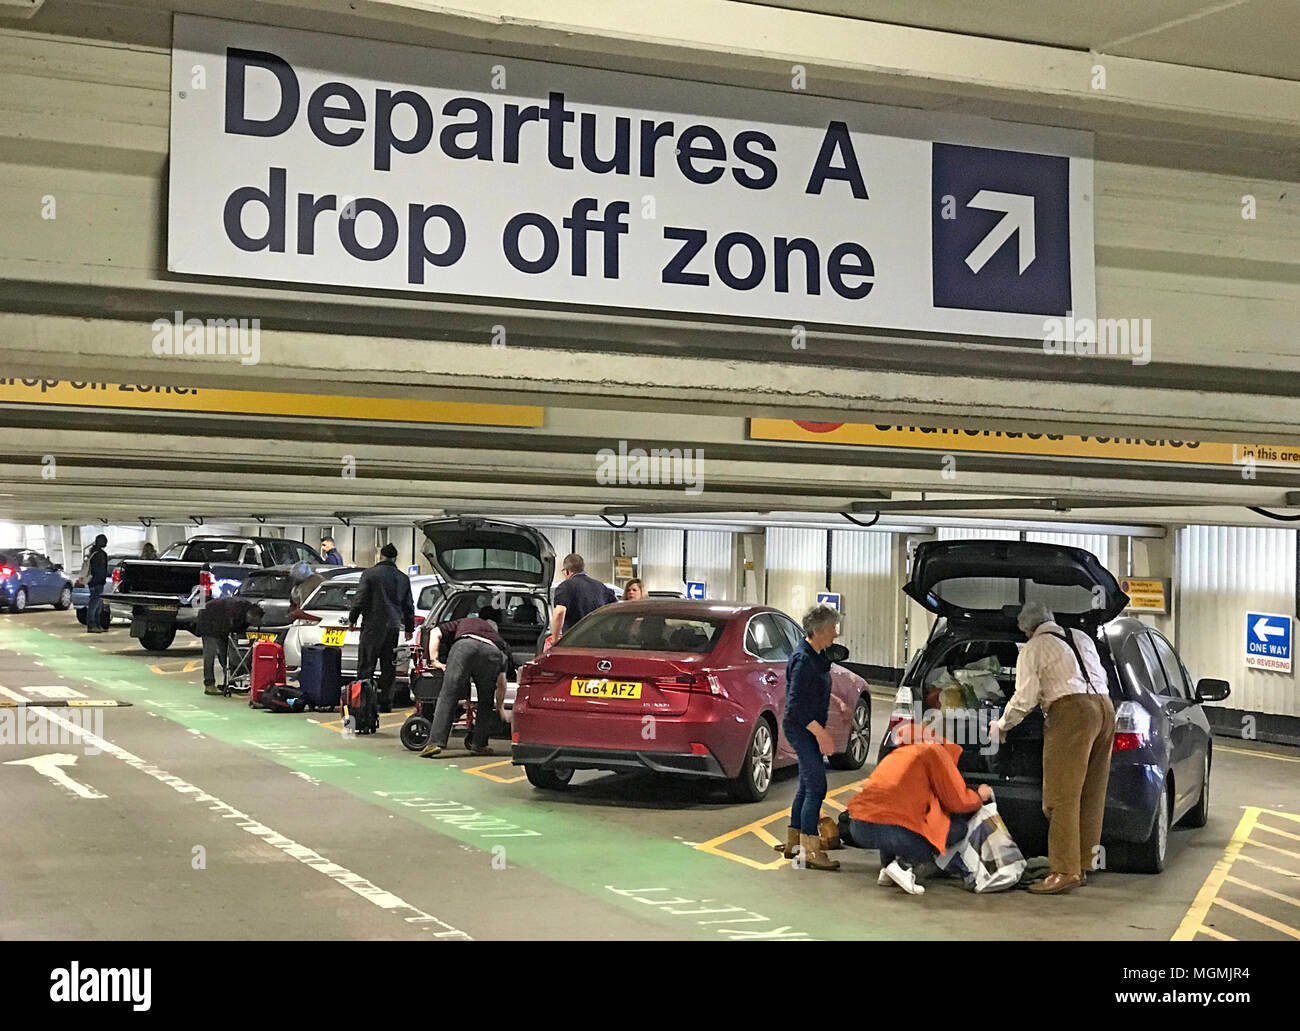 GoTonySmith,free,for,airport,flight,dropoff,drop-off,taxi,friends,tariff,Manchester International Airport,Ringway,unnecessary,costs,Dropoff Zone,Drop,off,Drop Off,Drop-off,parking,high,extortionate,tax,fly,flyers,travellers,free drop off,expensive,load,loading,unloading,20 minutes,inside,multistory,new charge,introduced,UK,England